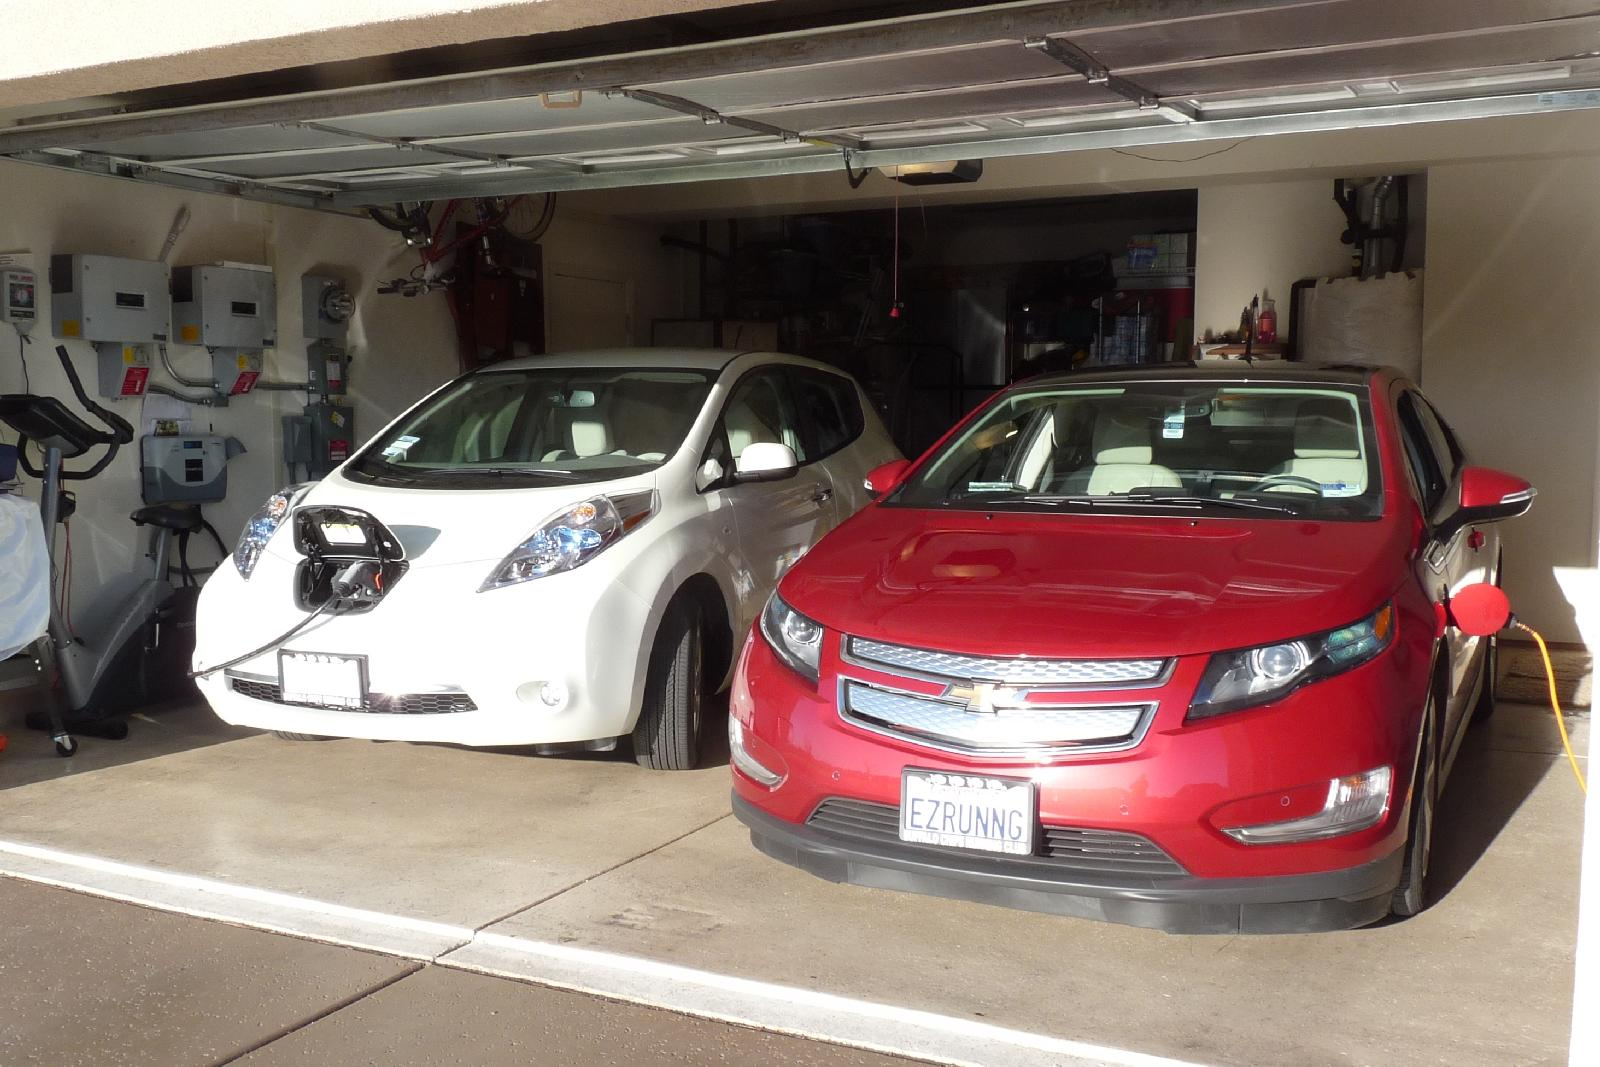 All Chevy chevy cars 2011 : 2011 Chevrolet Volt Vs 2011 Nissan Leaf: 7,000 Miles Later